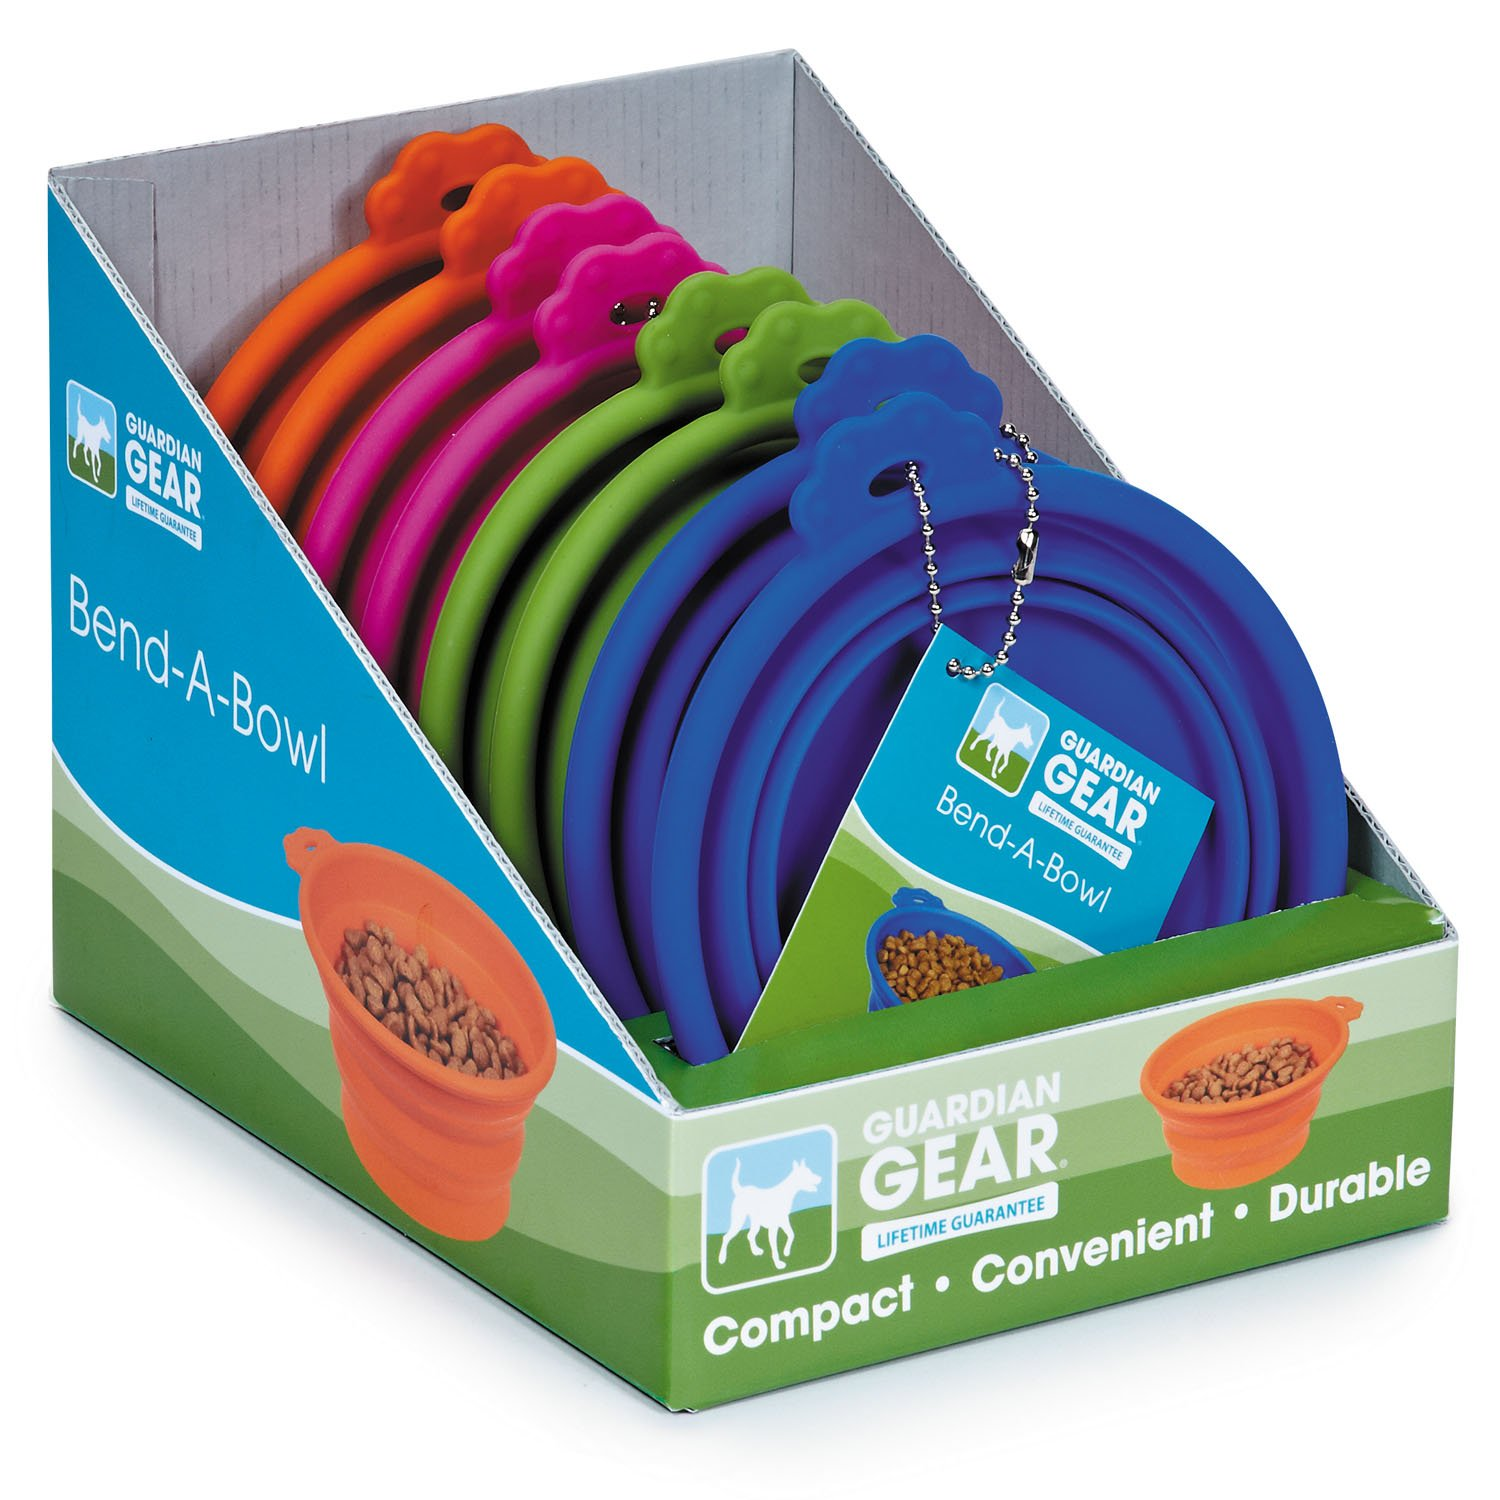 Guardian Gear Bend-a-Bowl Display of Dog Bowls (8 Pack), Medium by Guardian Gear